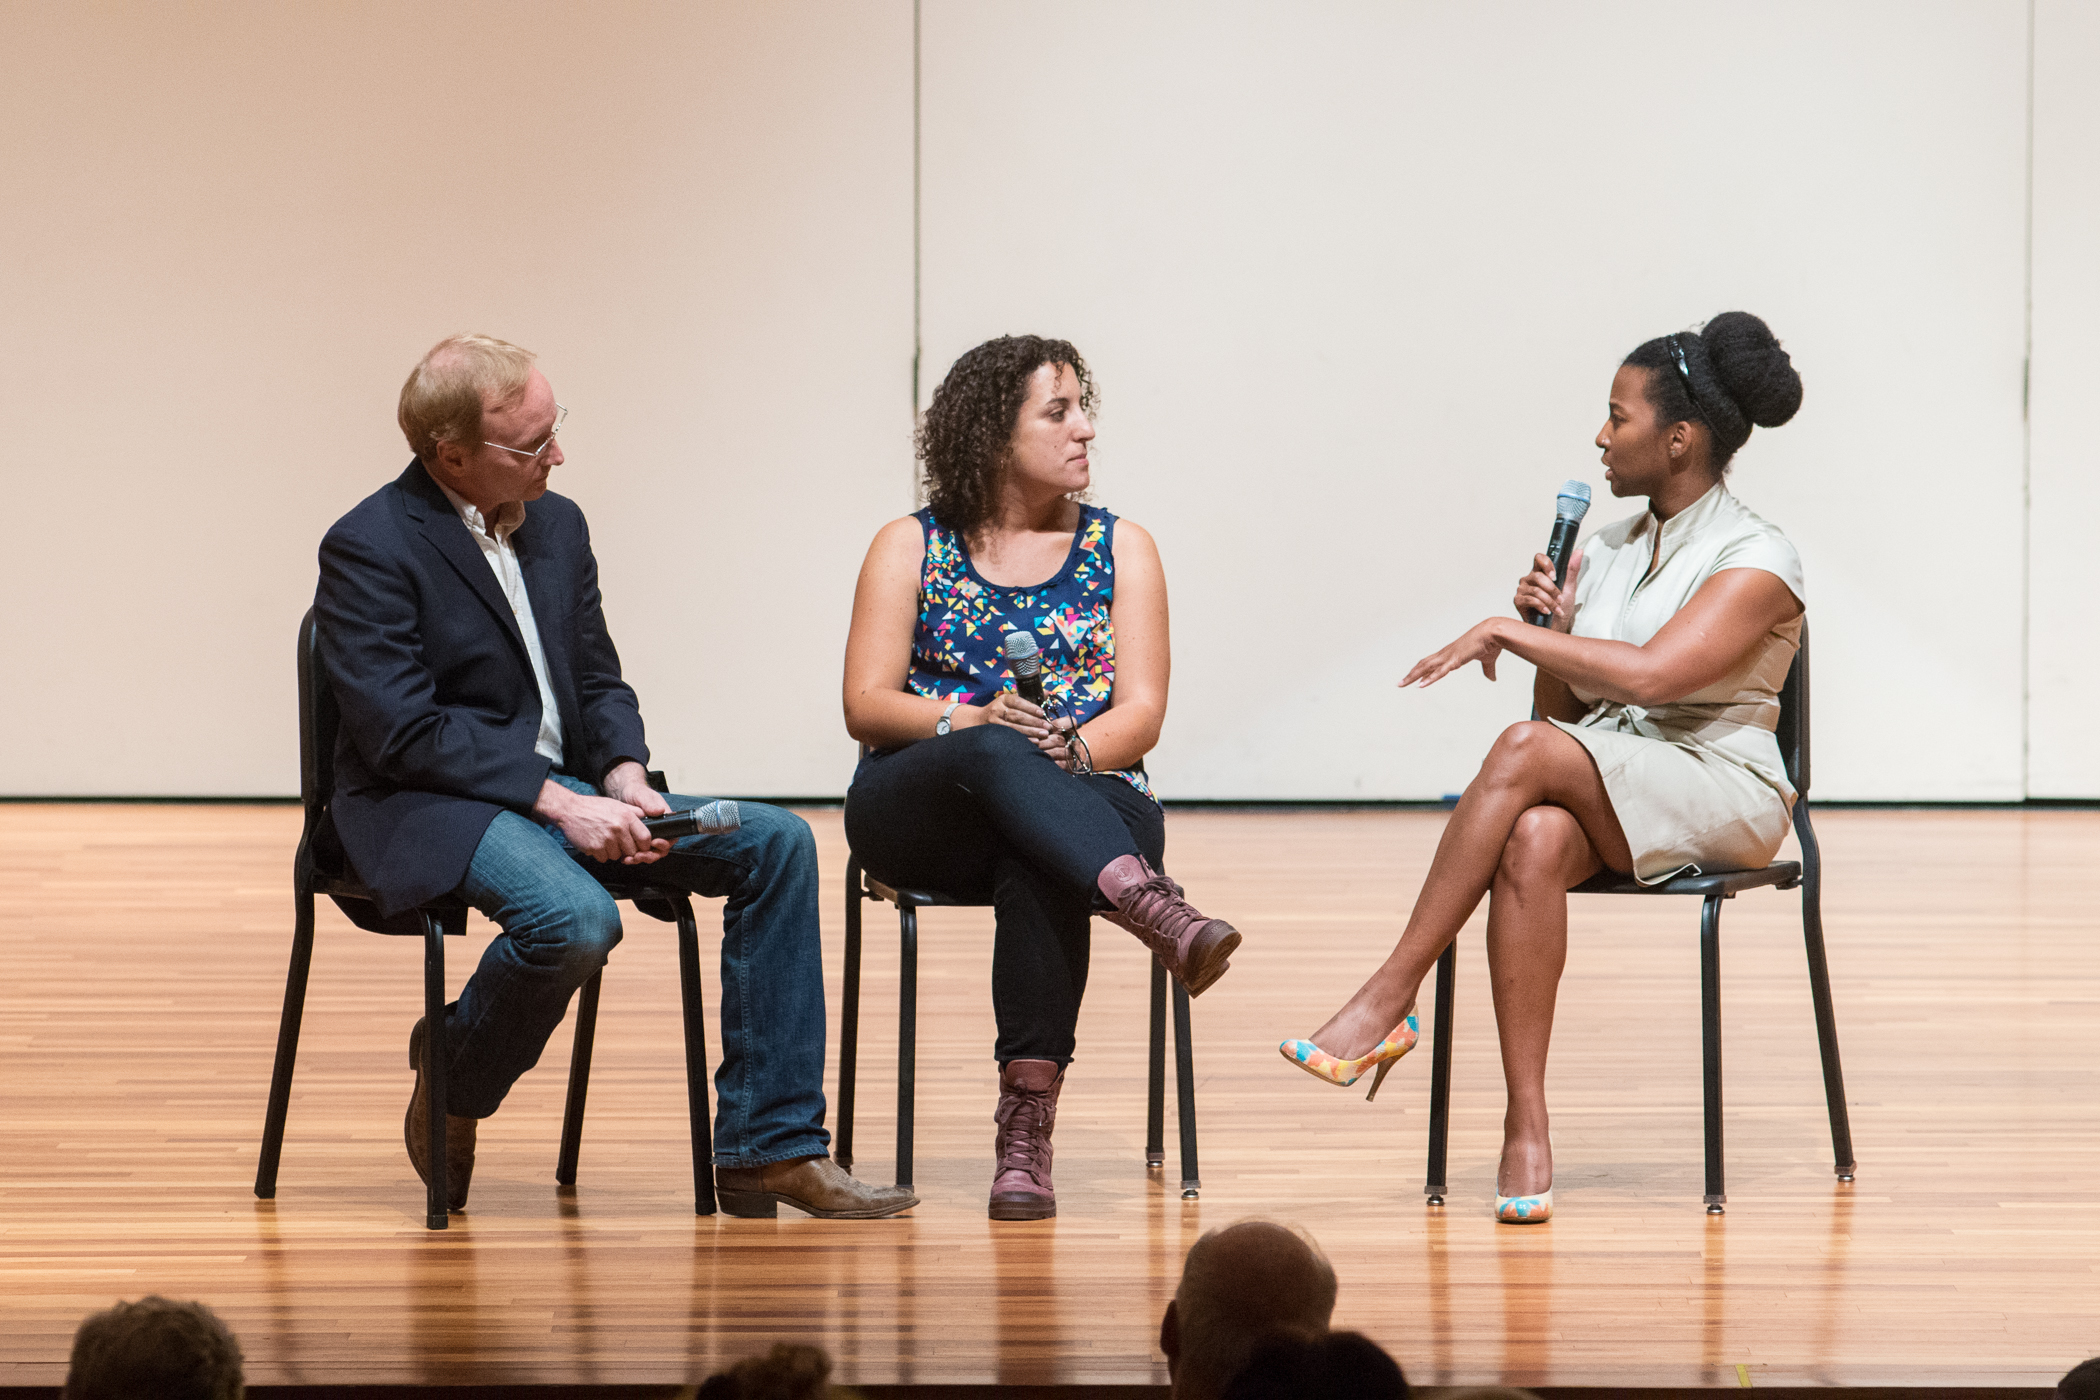 Melanie moderates a discussion on contemporary dance in Israel with Company E founder Paul Gordon Emerson and Israeli choreographer Rachel Erdos. Photo by Jeff Watts